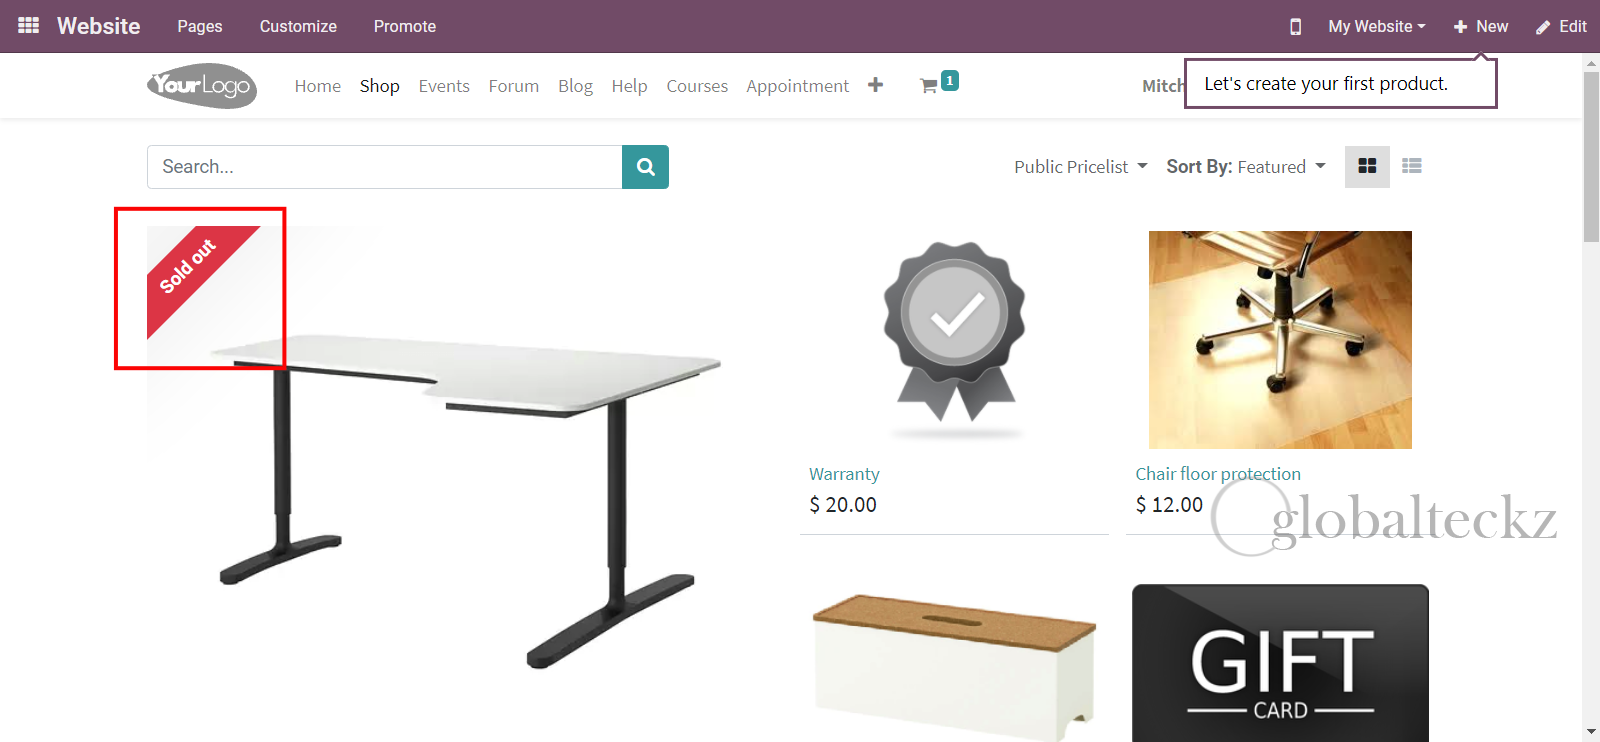 odoo website Ribbon in Products